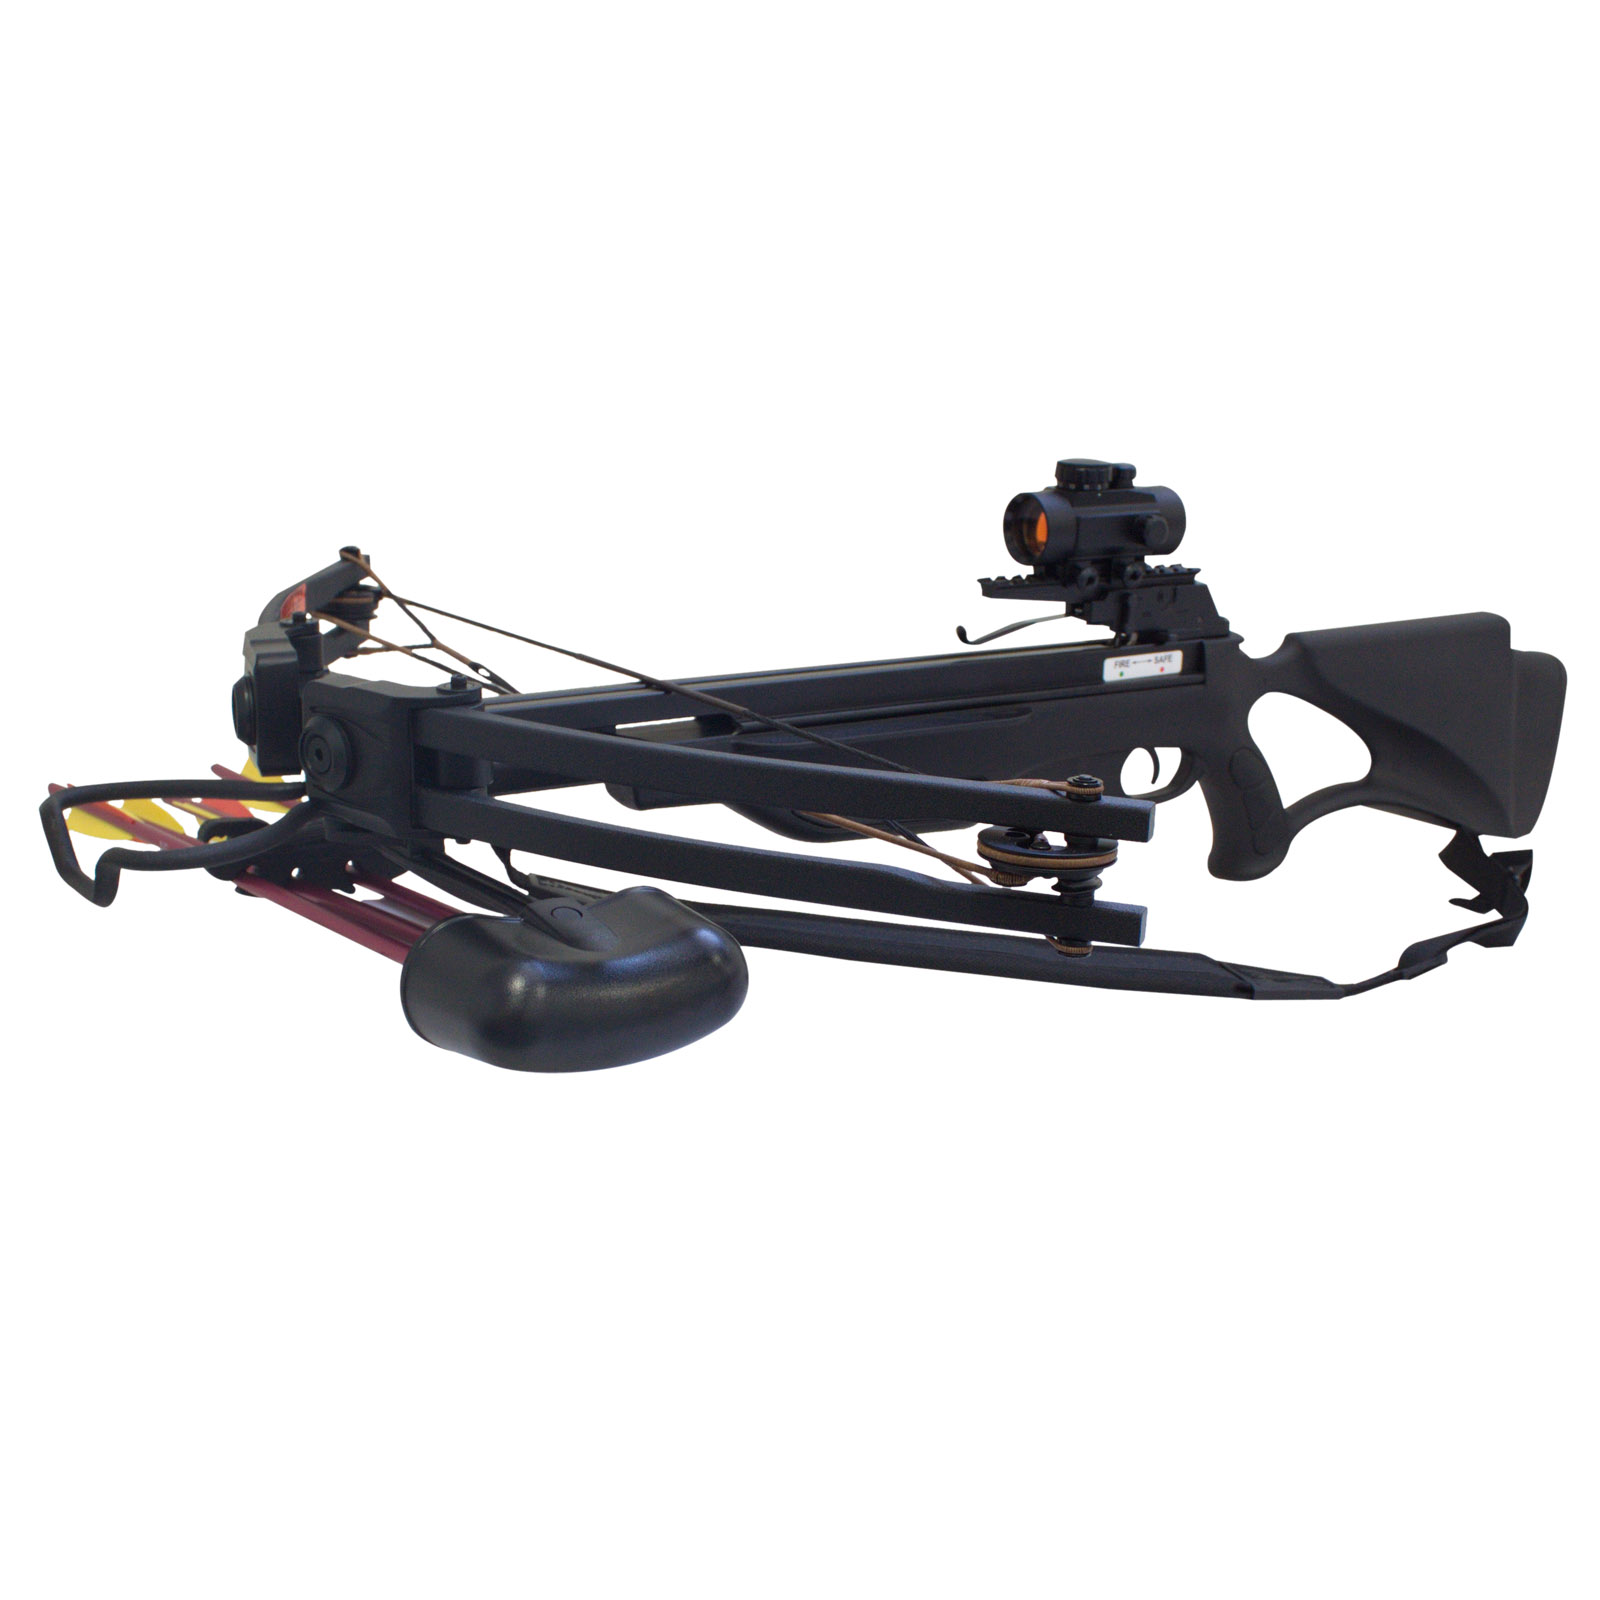 Click here to buy SAS Terrain 175lbs Crossbow Red Dot Scope Package.